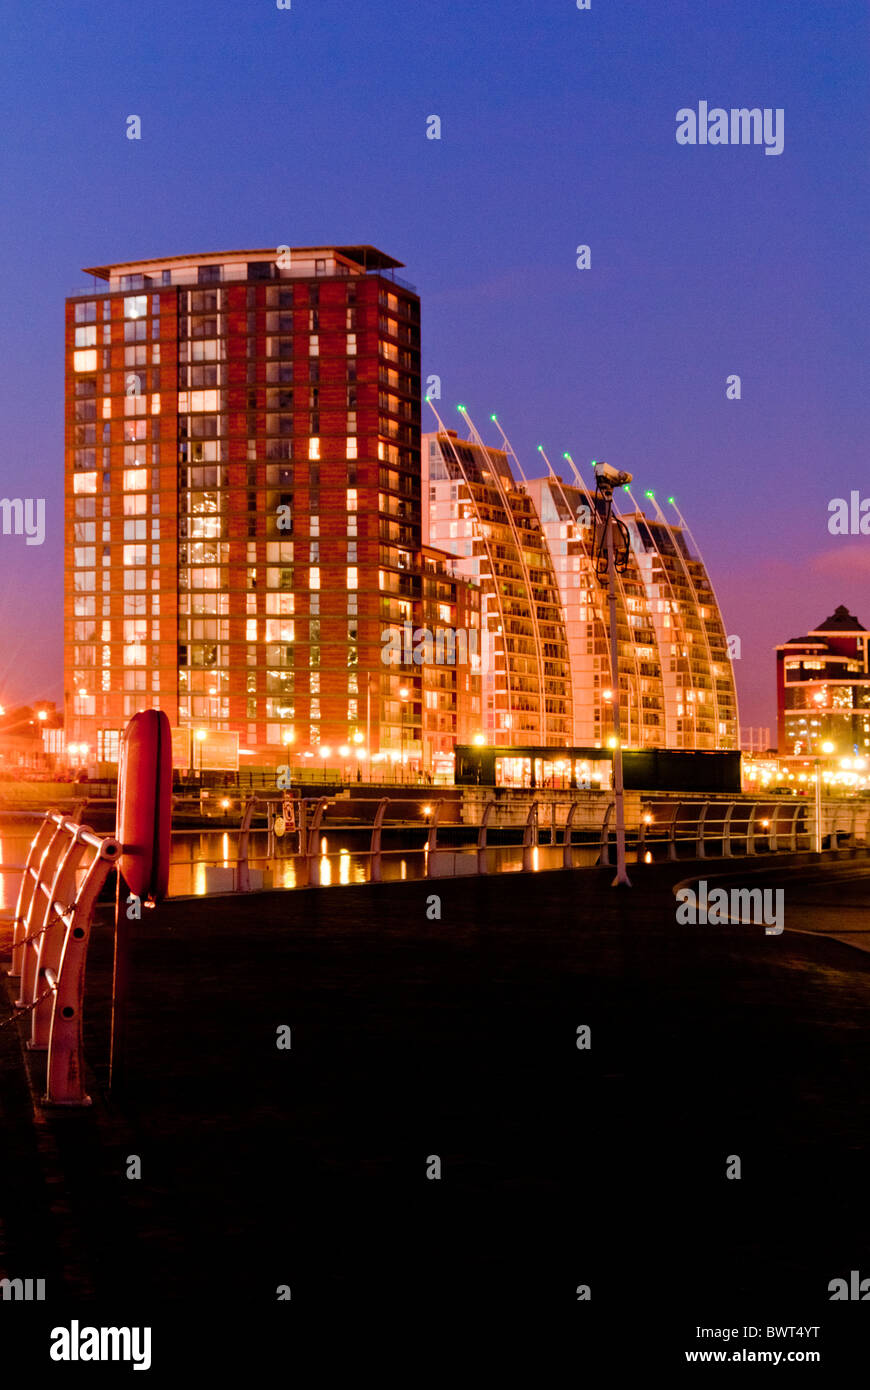 NV buildings at Salford Quays, Manchester, UK - Stock Image